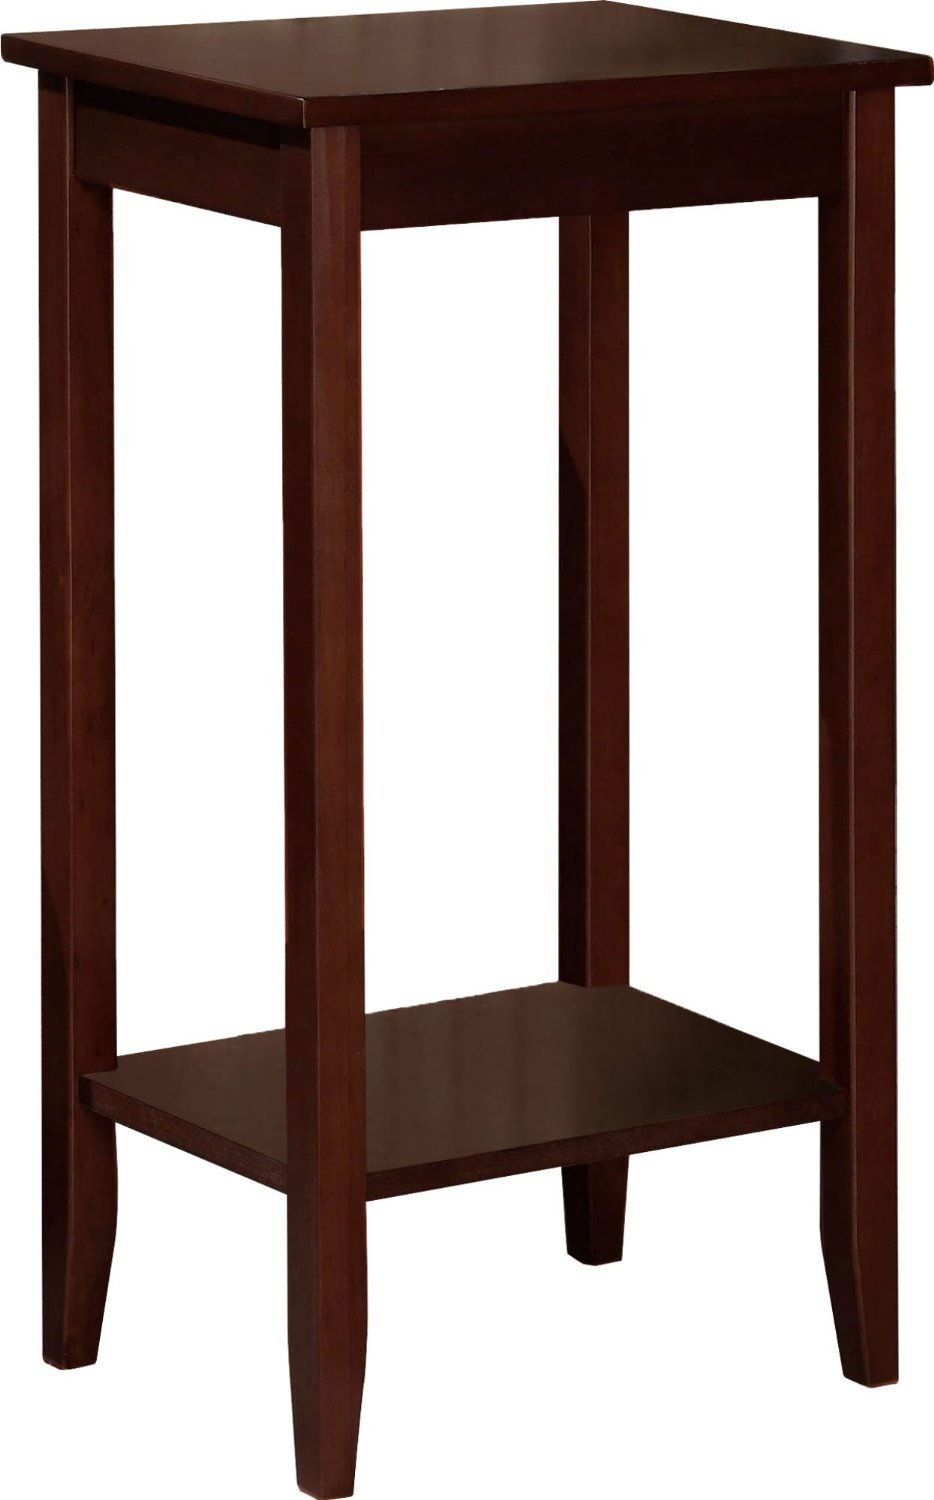 amazoncom set of  rosewood tall end tables coffee brown  - amazoncom set of  rosewood tall end tables coffee brown kitchen dining